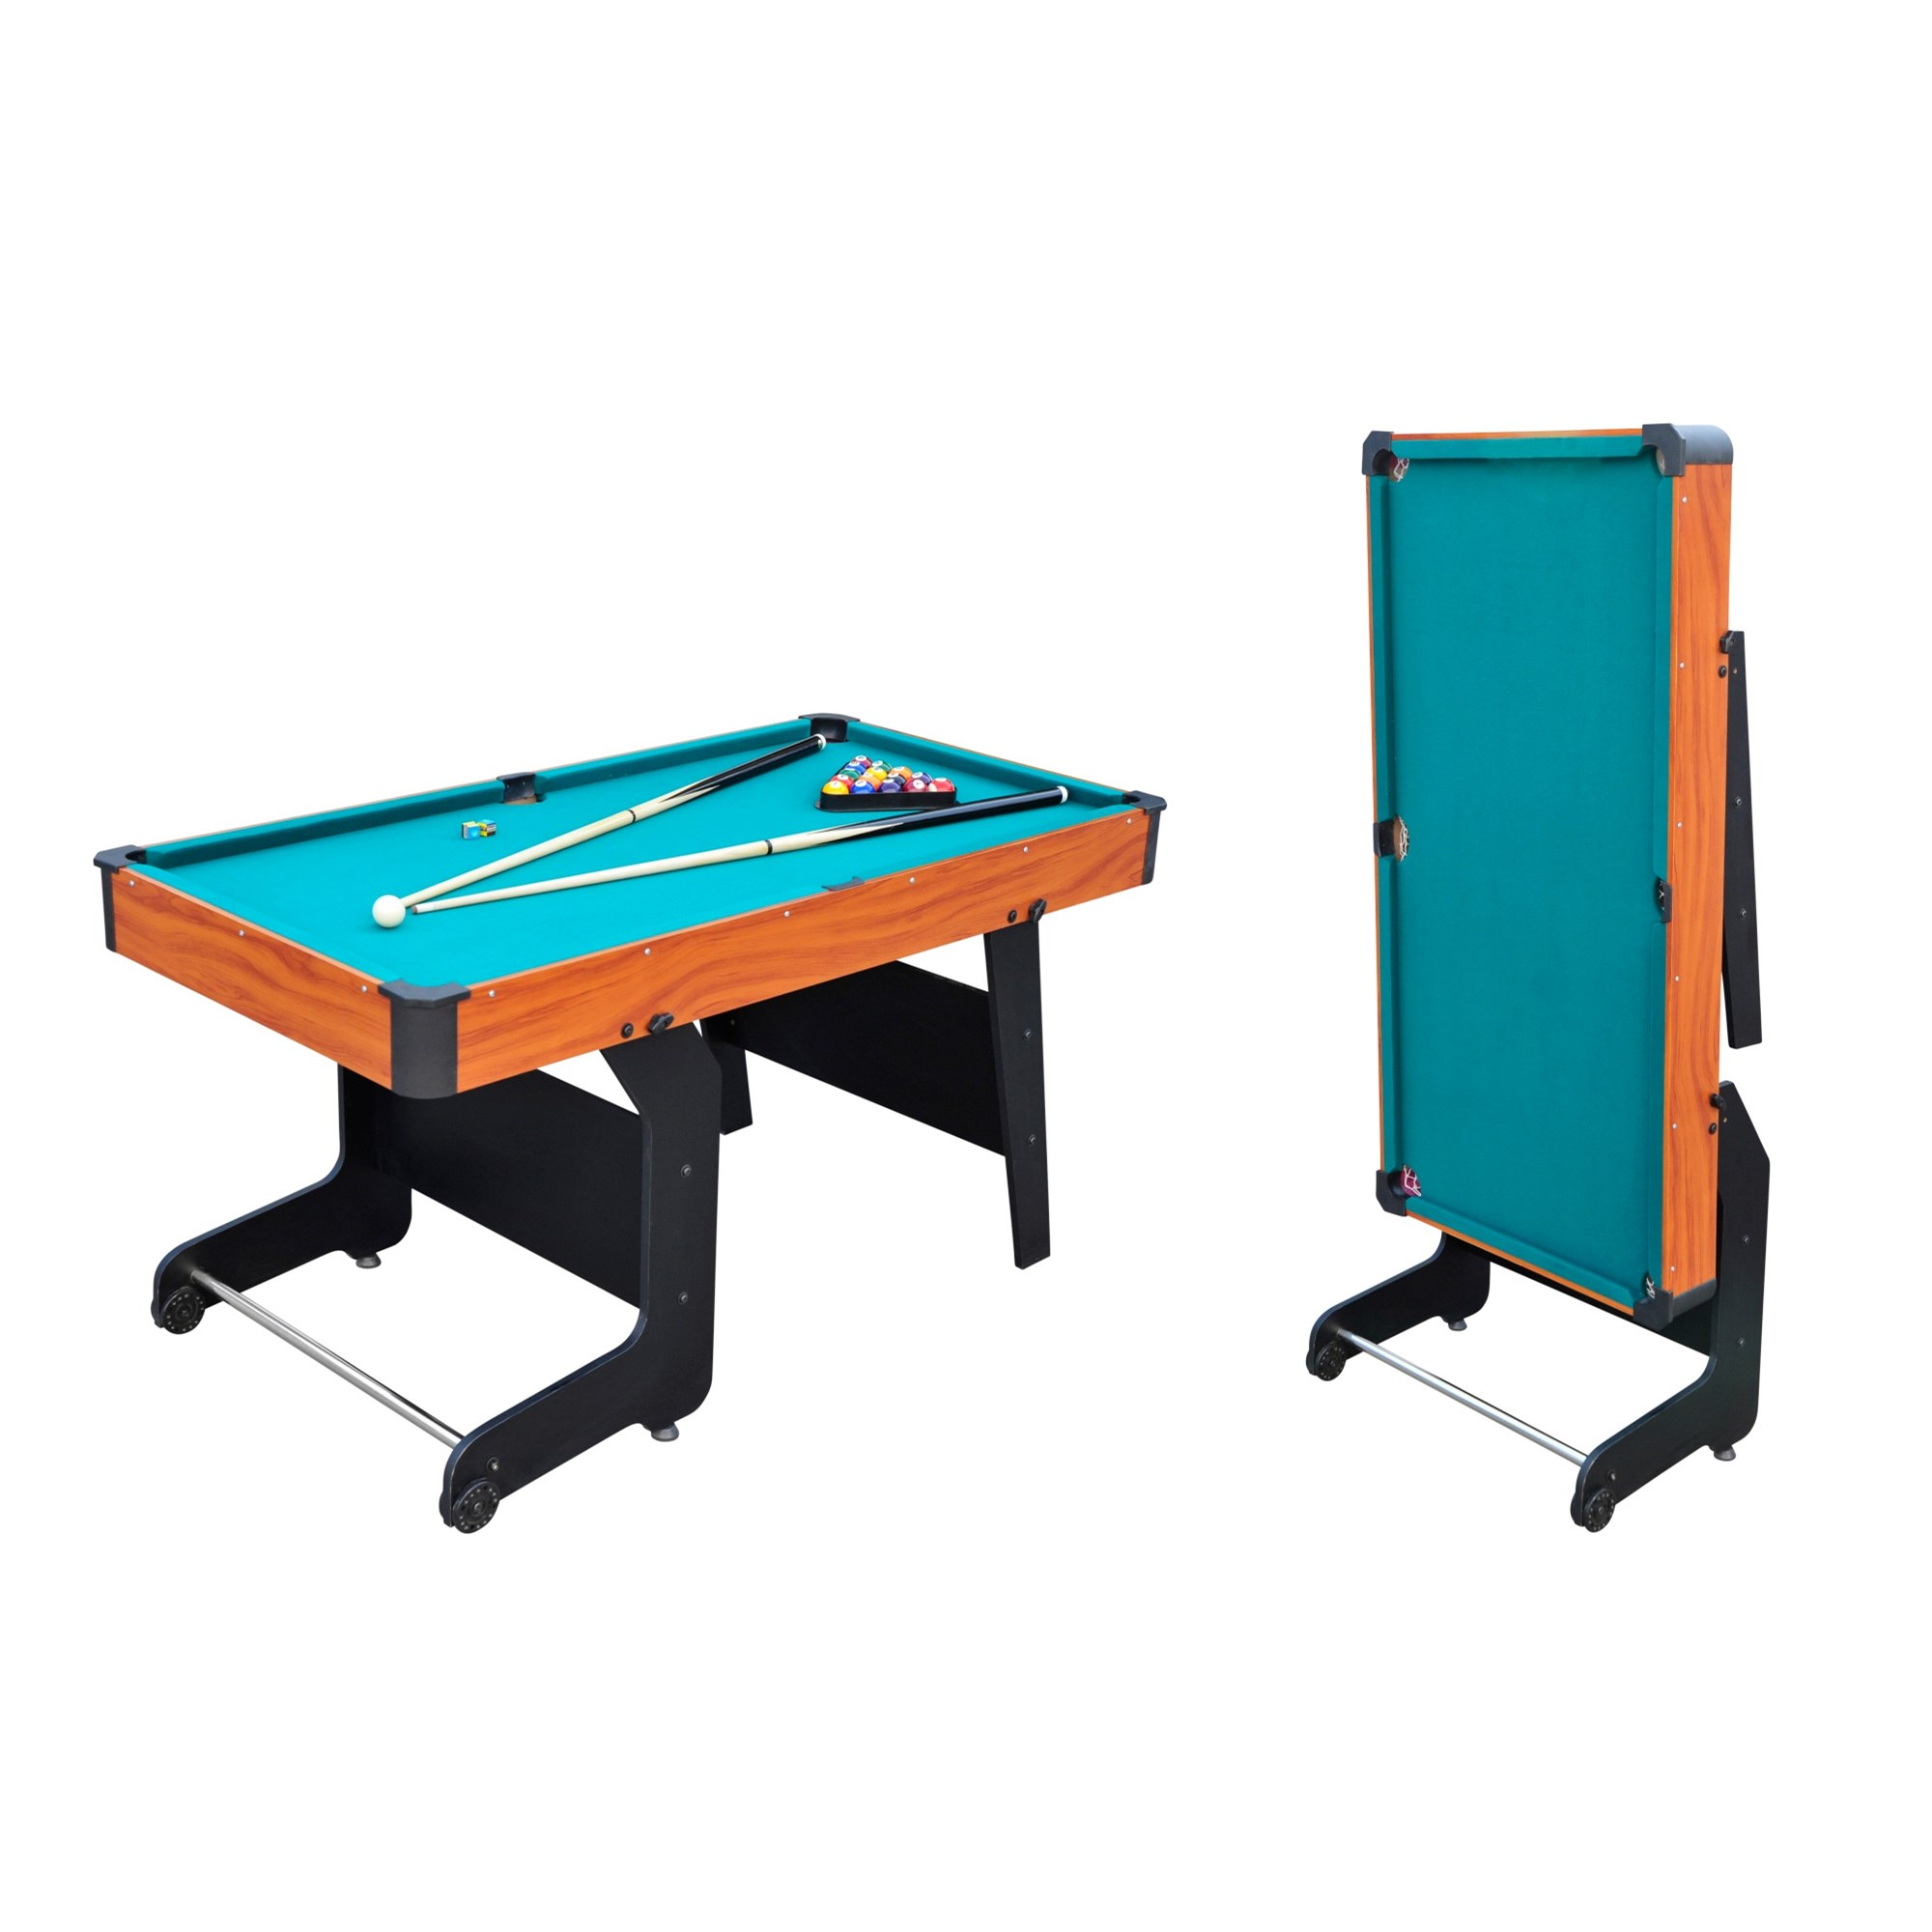 - 5ft Folding Pool Table For £84.99 (Was £169.99) At Smyths Toys HQ